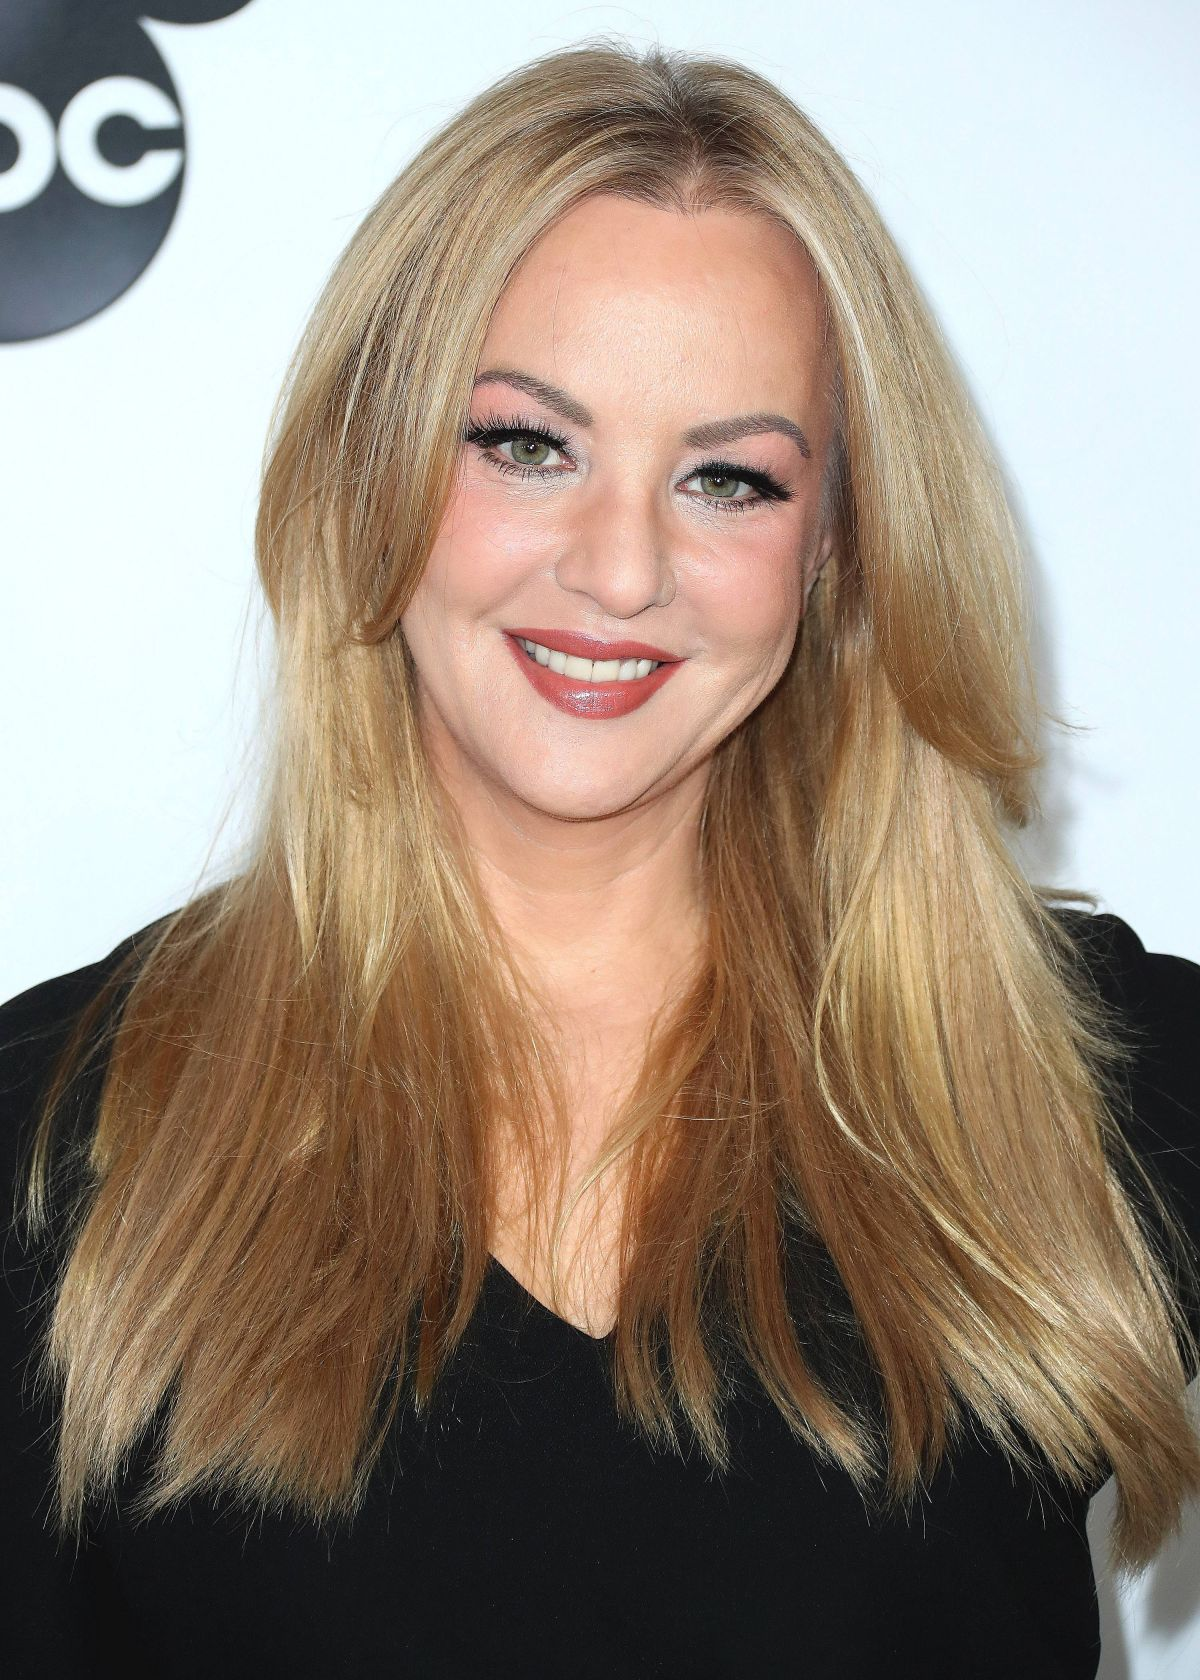 WENDI MCLENDON-COVEY at Mickeys 90th Spectacular in Los